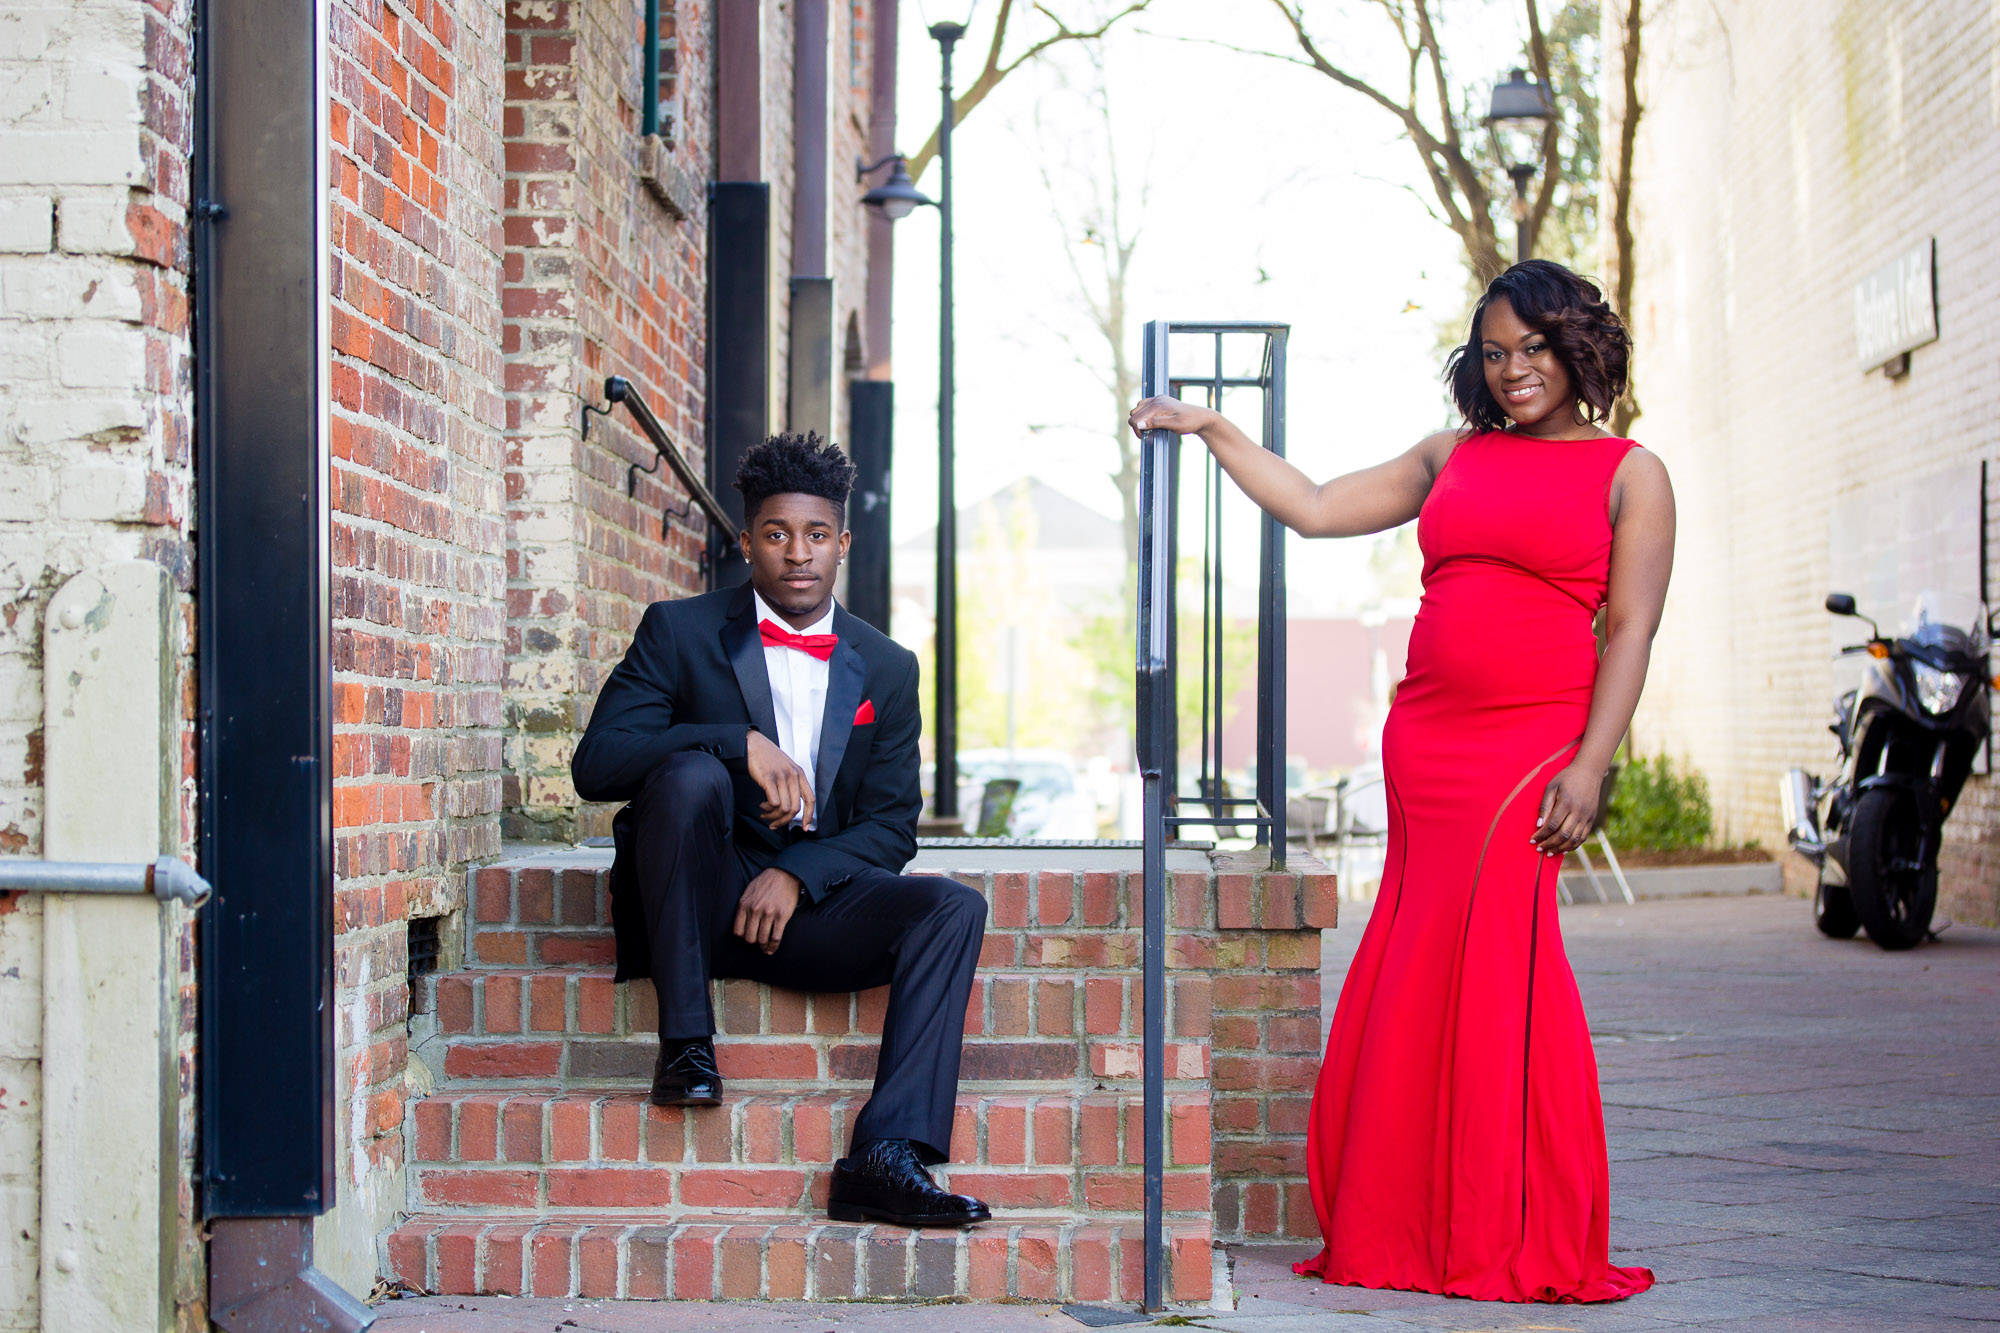 Prom Pose Ideas | Talasha Smith Prom Portraits 2016 | Senior Photographer | Greenville NC Photographer | Uptown Greenville — Startlight Cafe | Bryant Tyson Photography